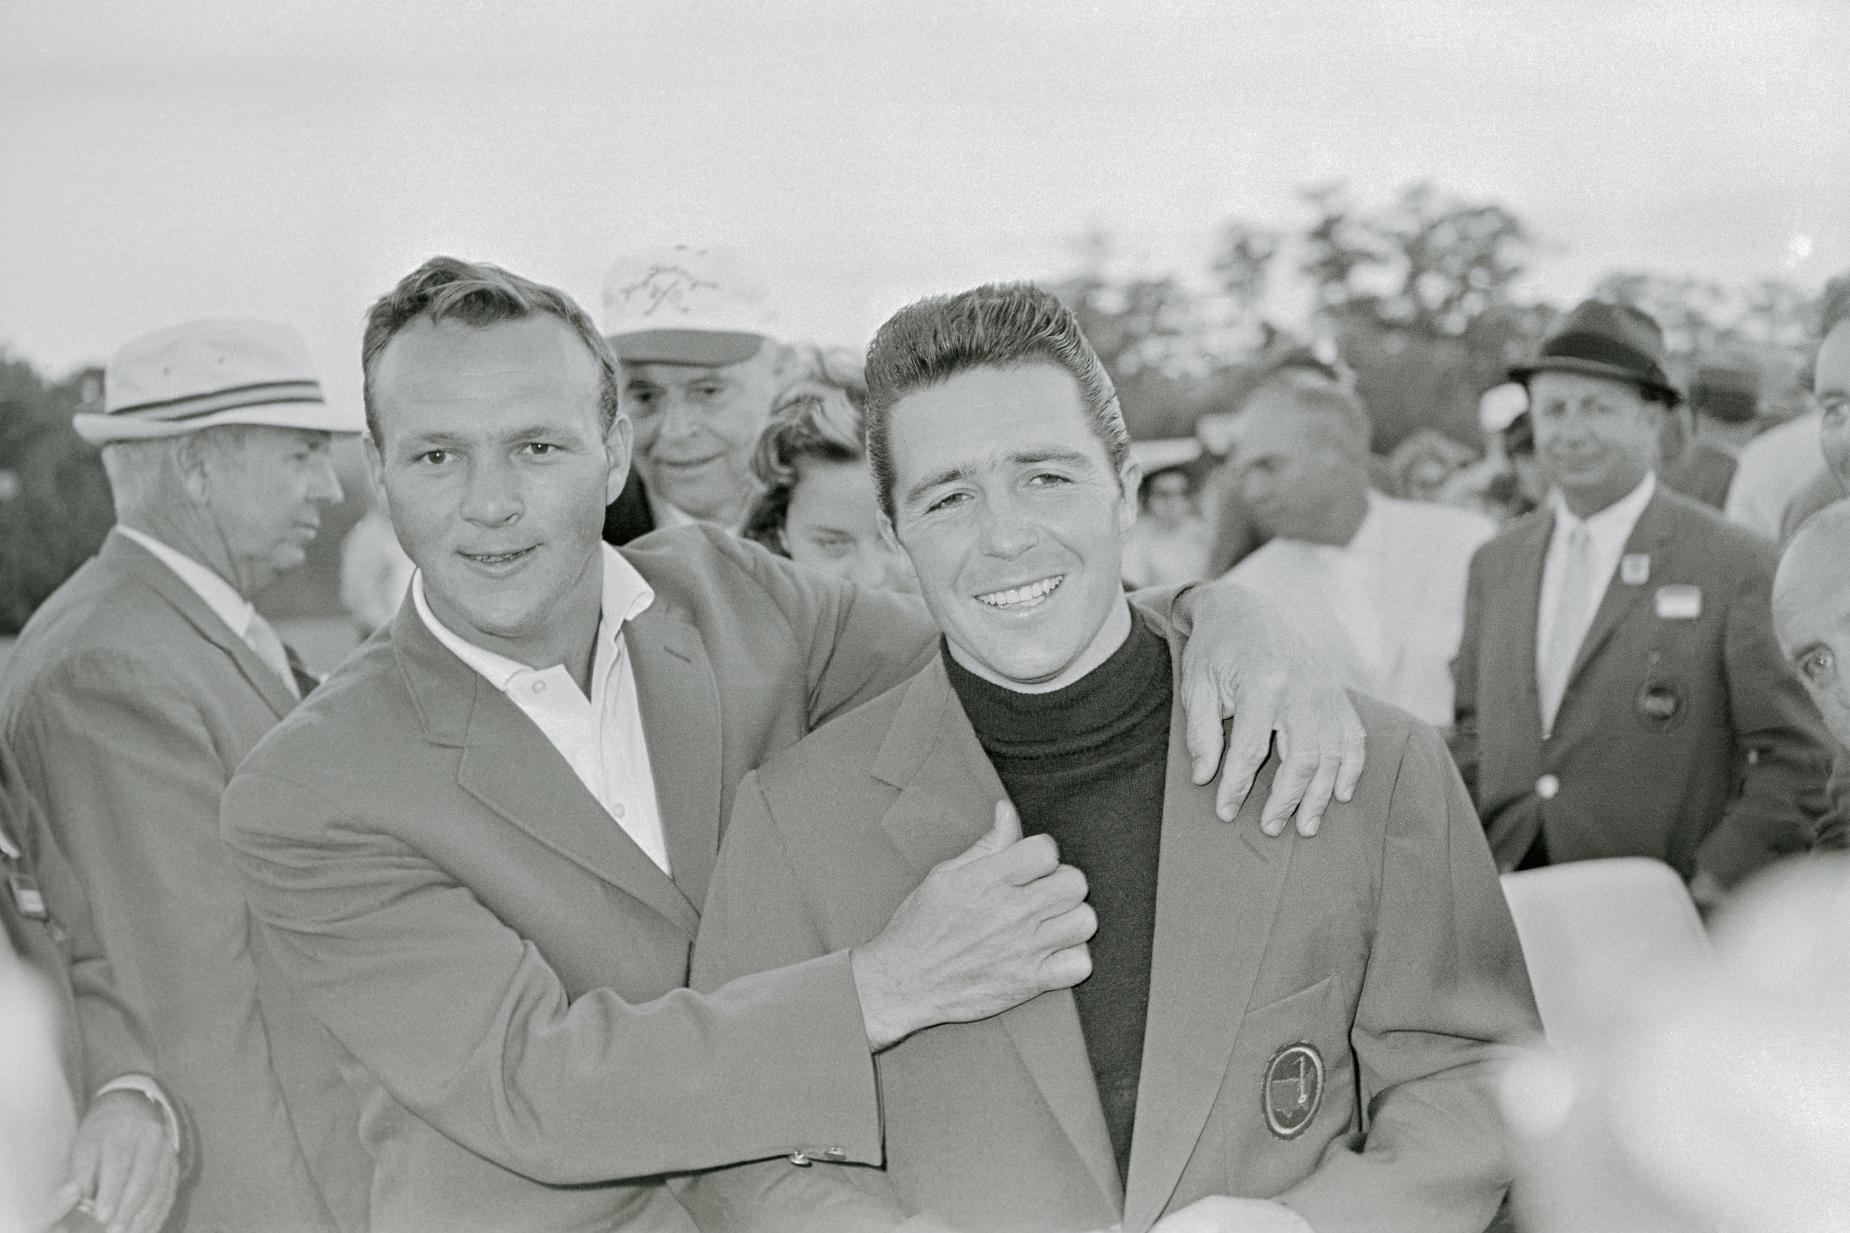 Golfers Arnold Palmer and Gary Player at Masters